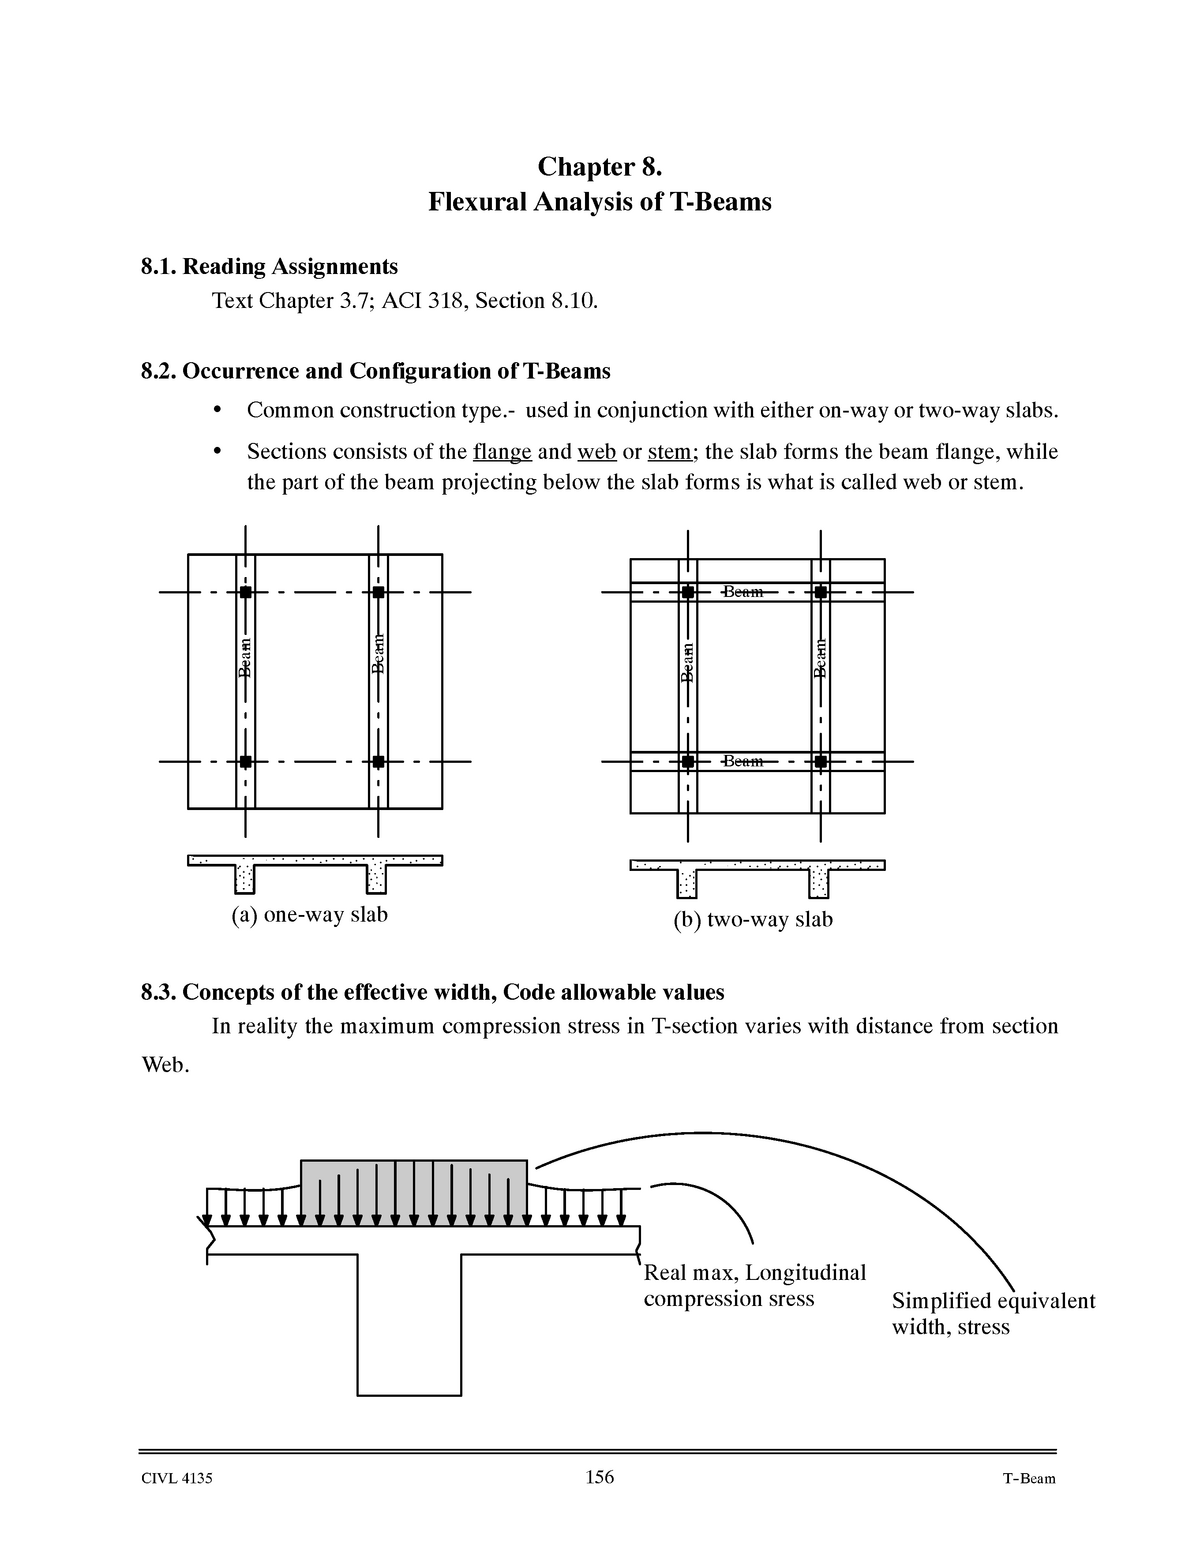 Chapter 8 Flexural Analysis of T-Beams - CIVL 4135: Reinforced